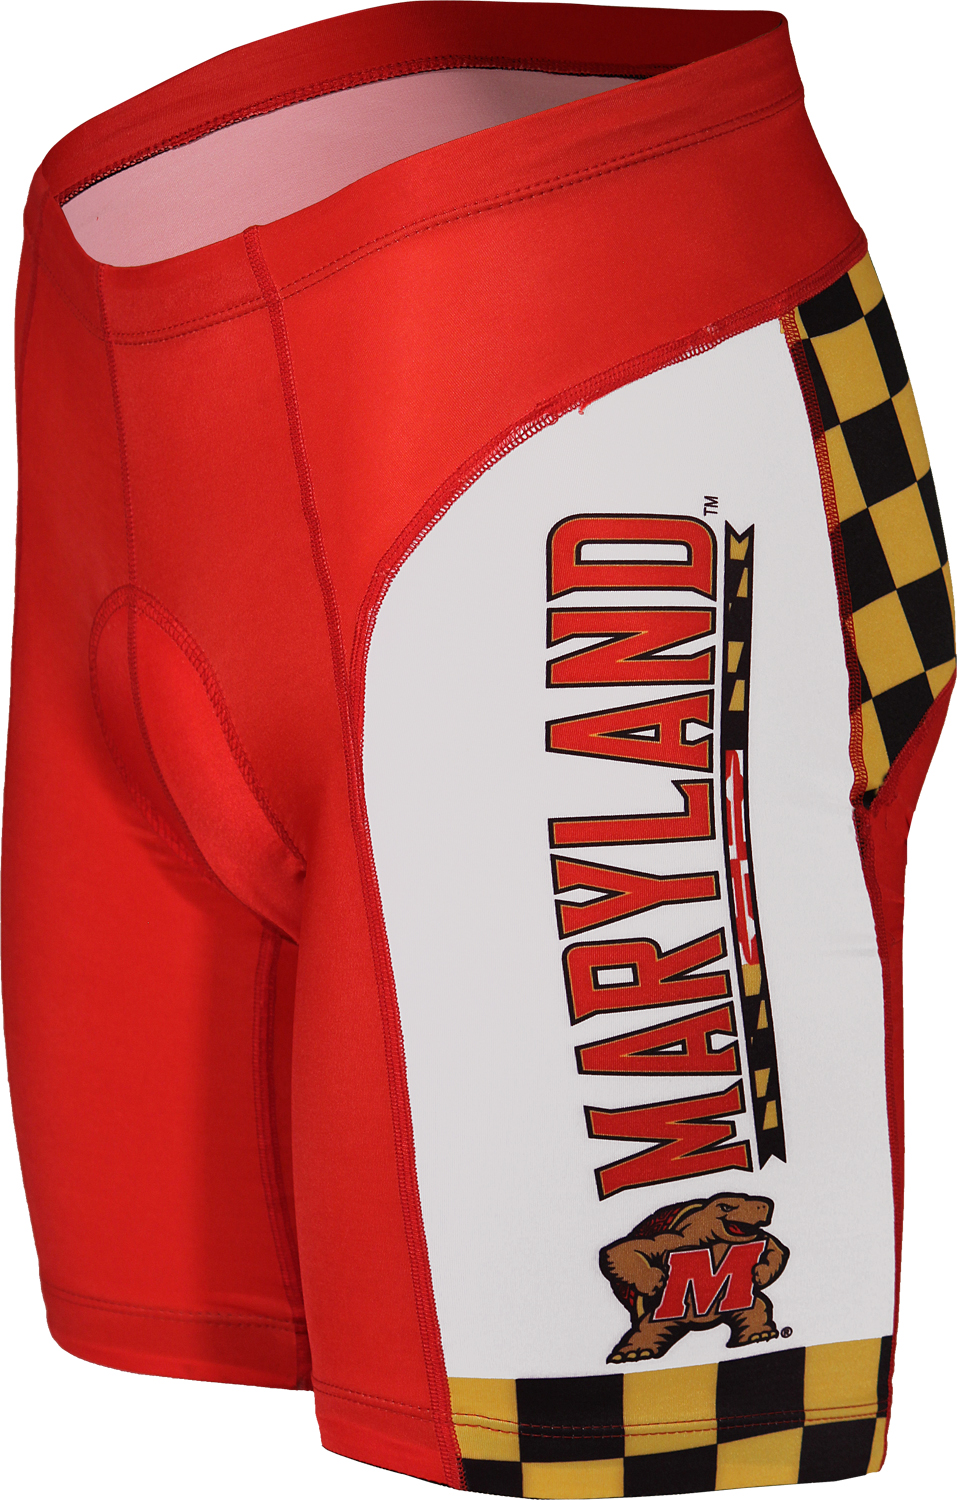 University of Maryland Terrapins Cycling Shorts L